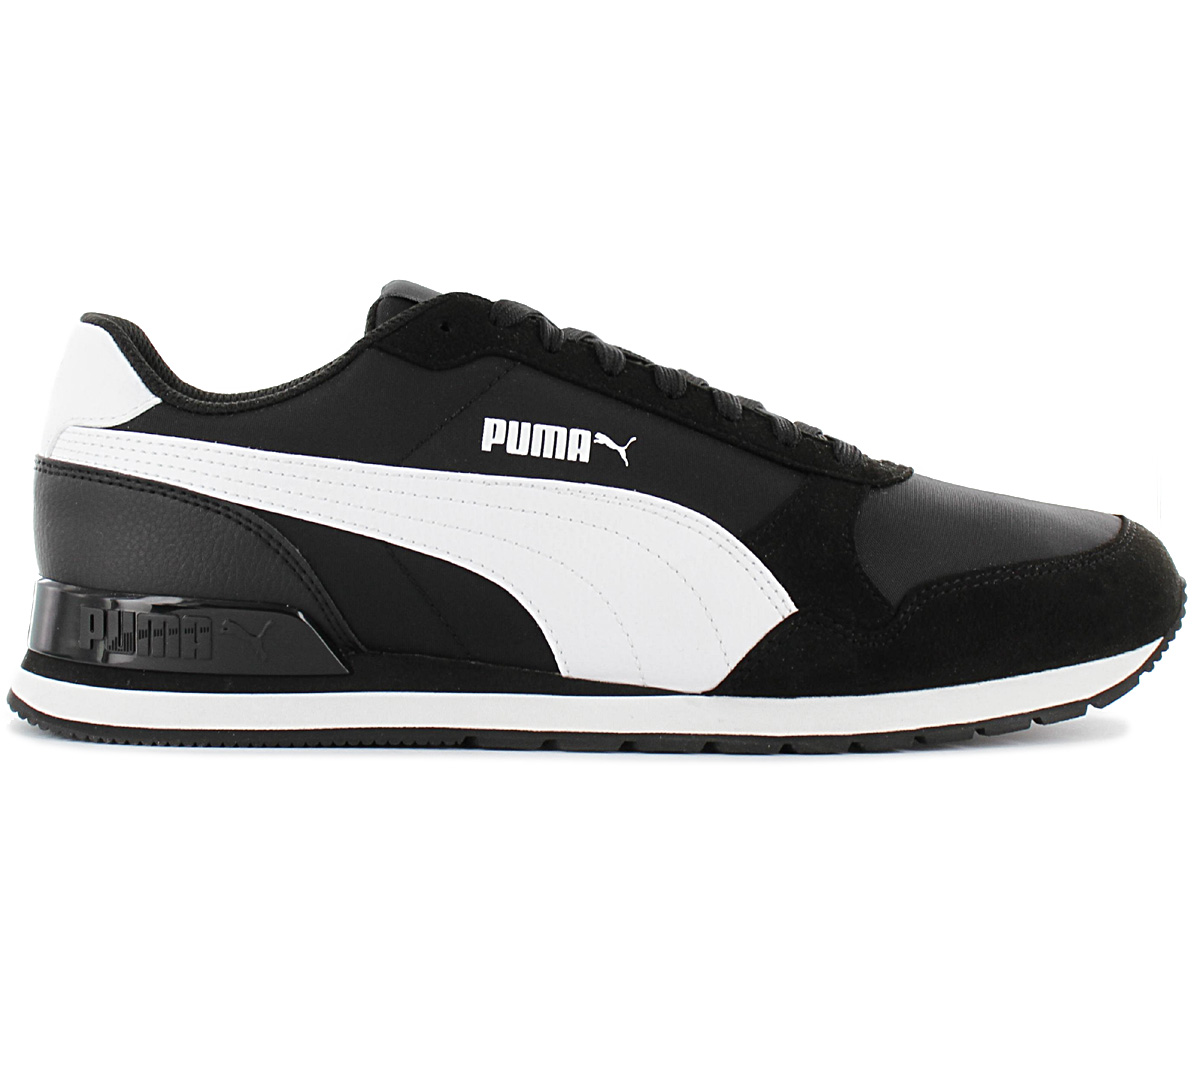 Details about Puma ST Runner V2 NL Mens Trainer 365278 01 Black Shoes Casual Sneakers show original title